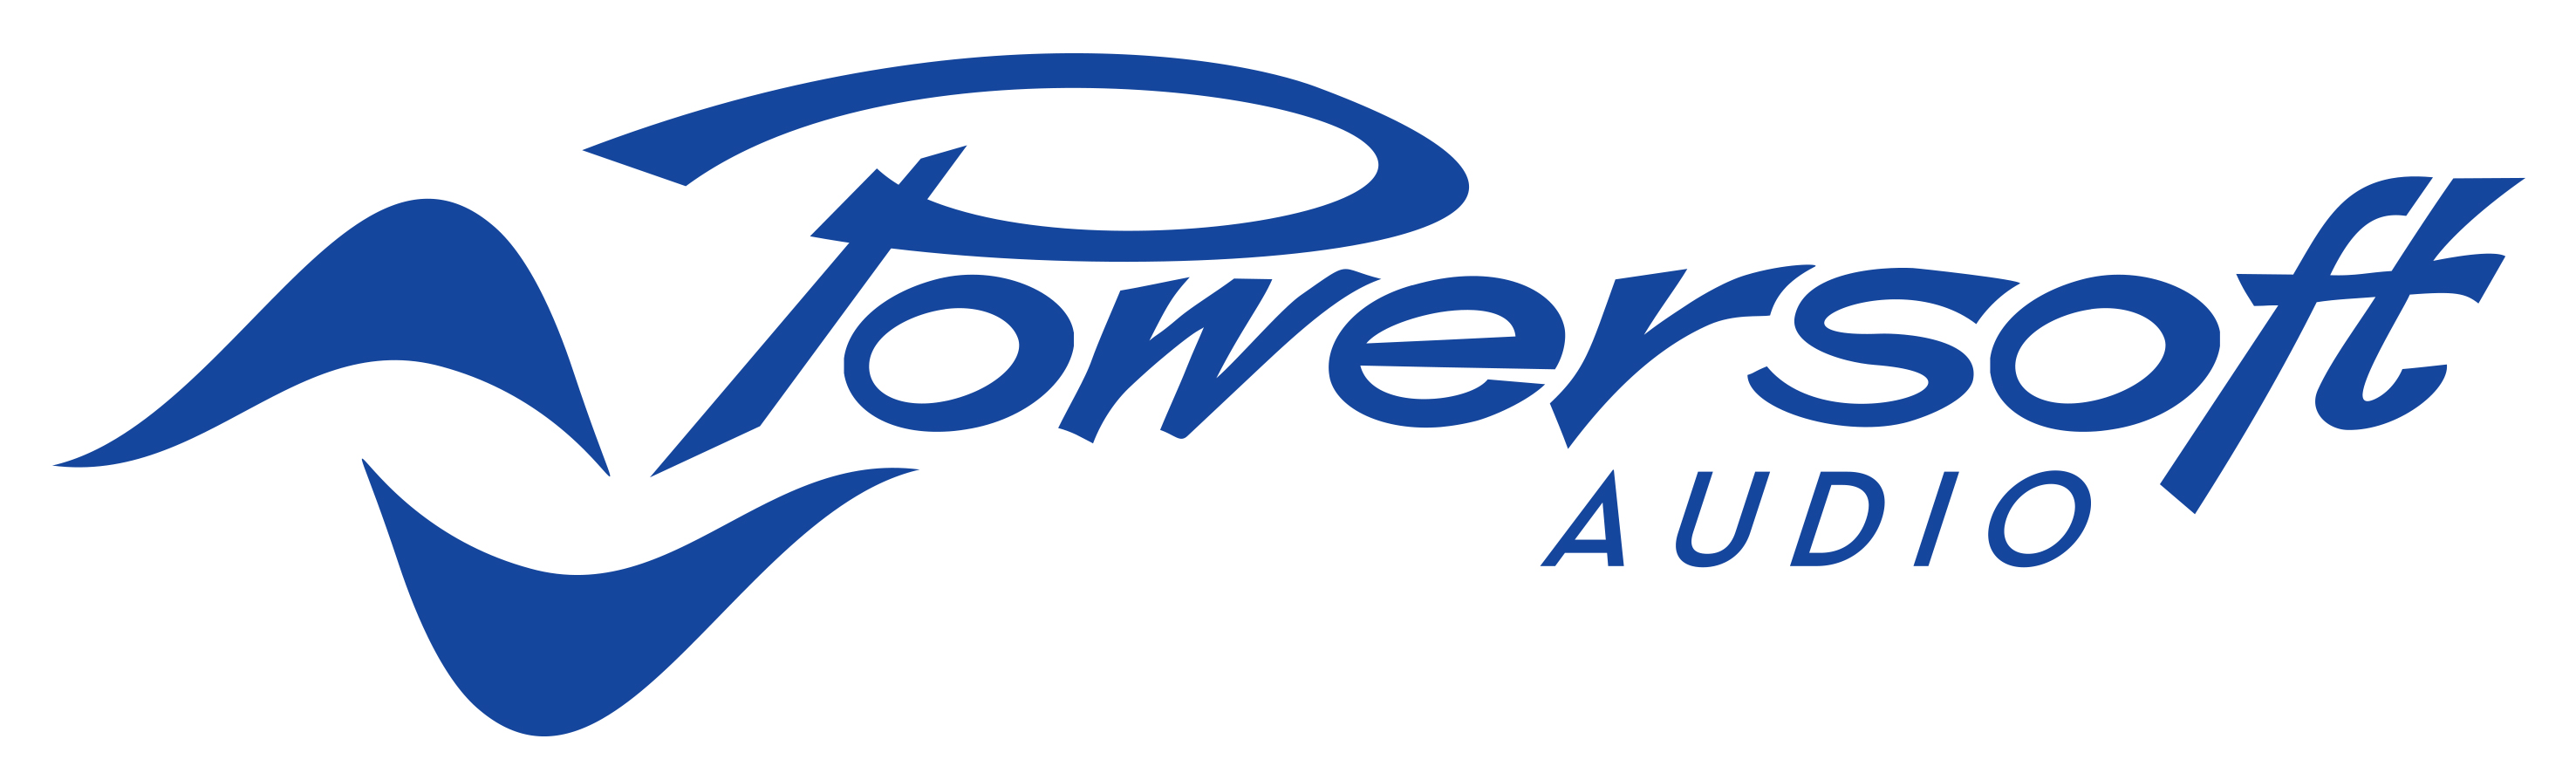 Powersoft logo